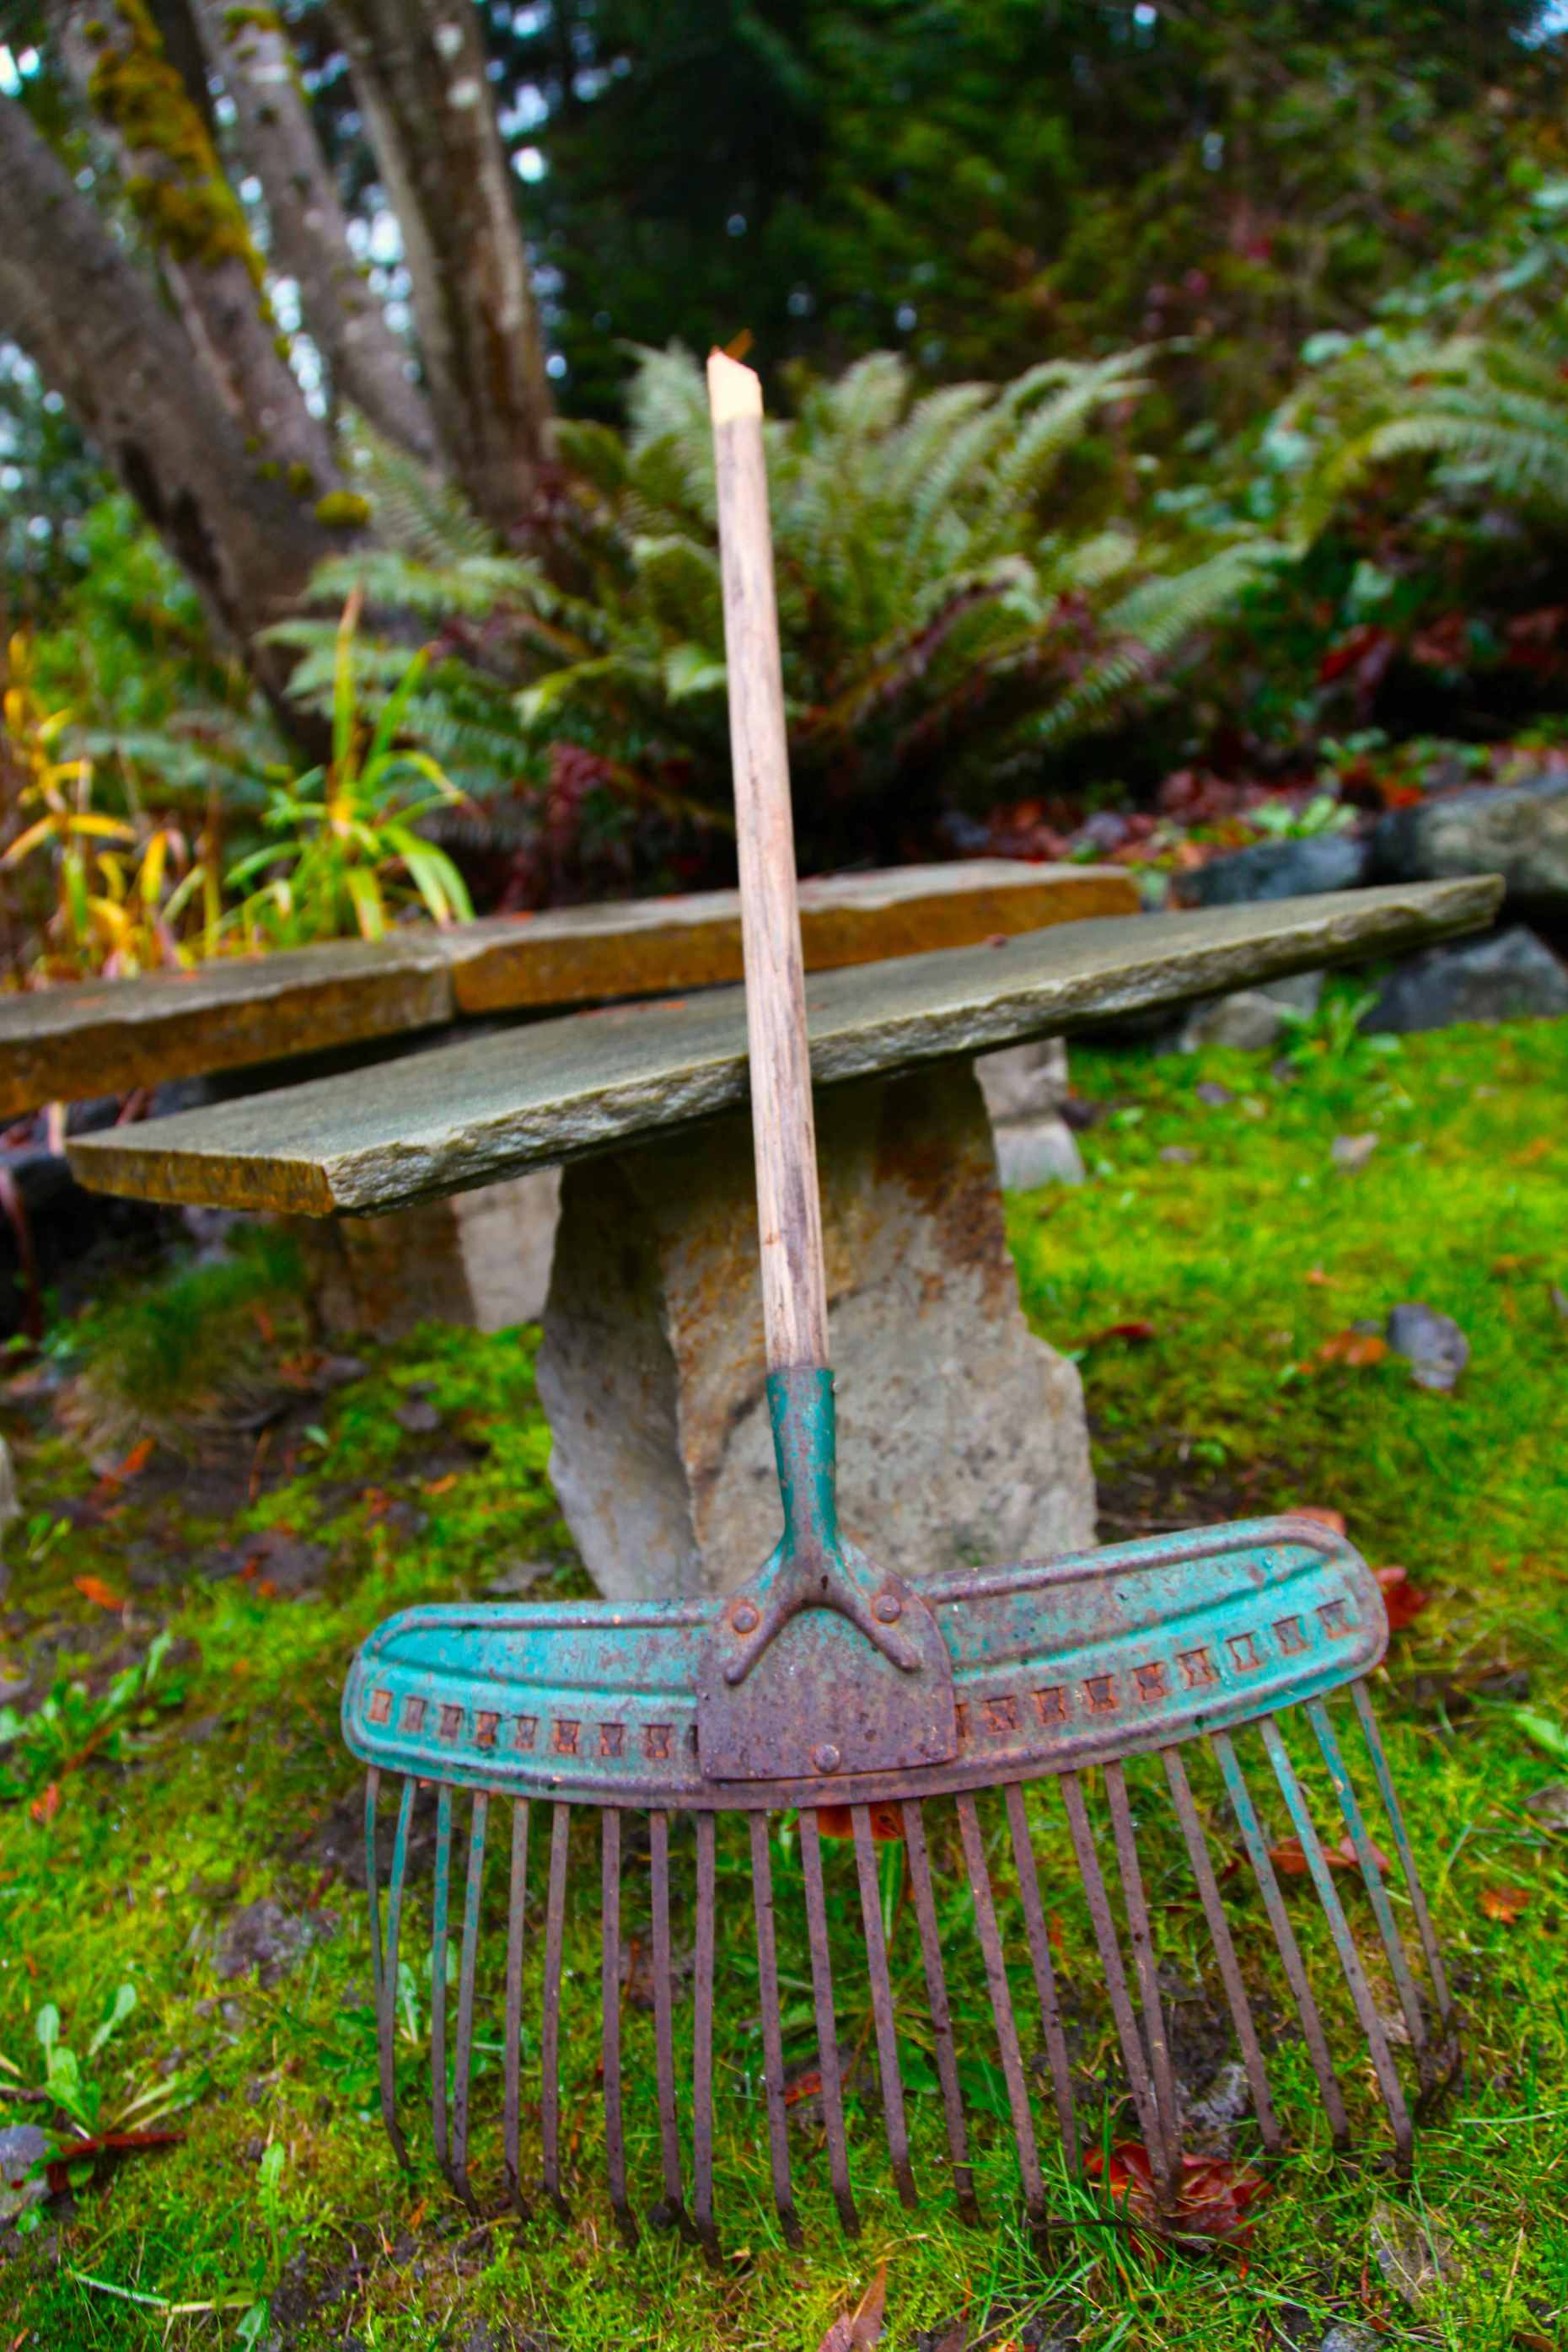 Here's the metal rake I need to mend. The handle broke off but the head keeps on working! It's been a nice child-sized rake, but I'm selfish, I want it back! Photo © Liesl Clark